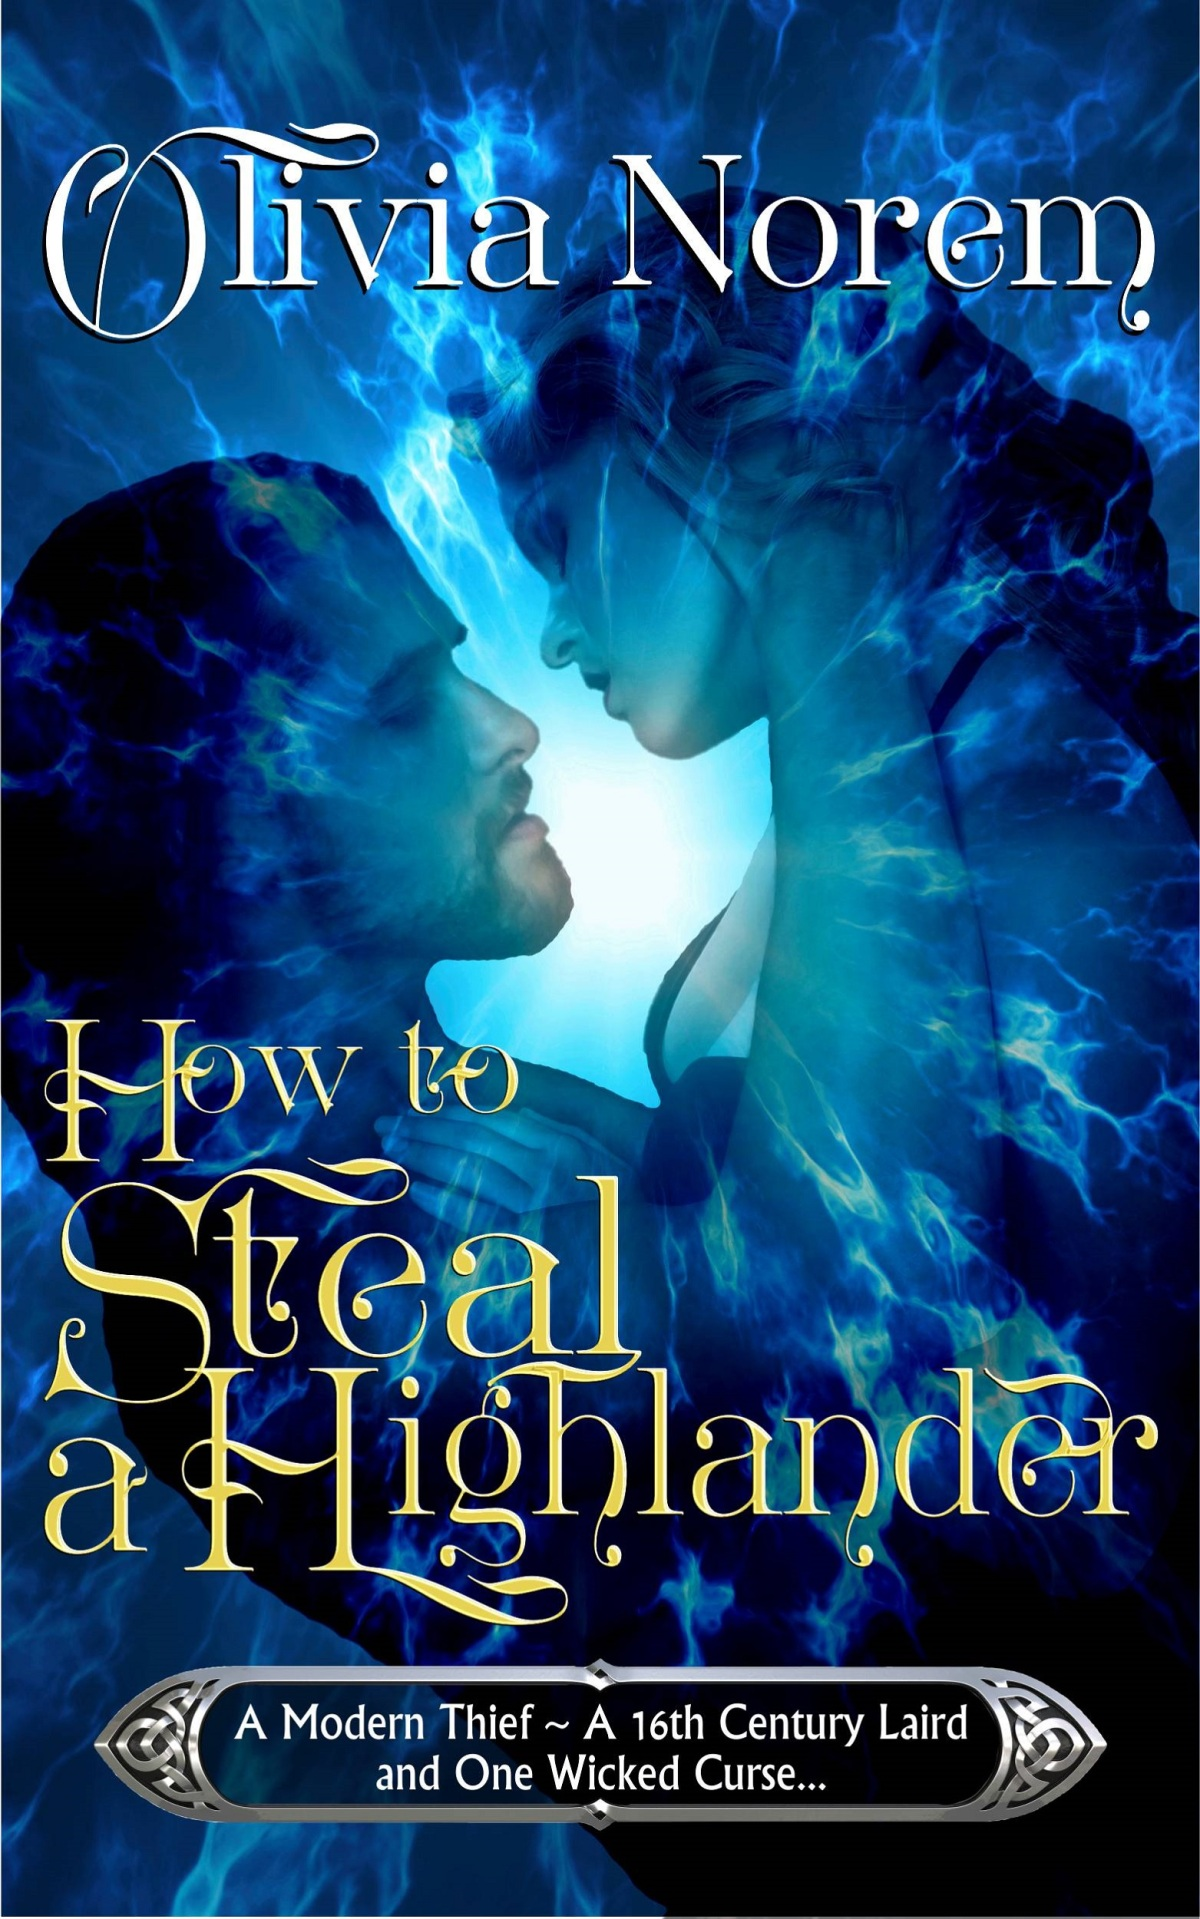 #BookReview: How to steal a Highlander by Olivia Norem | A modern thief & A 16th Century Laird & A wickedcurse